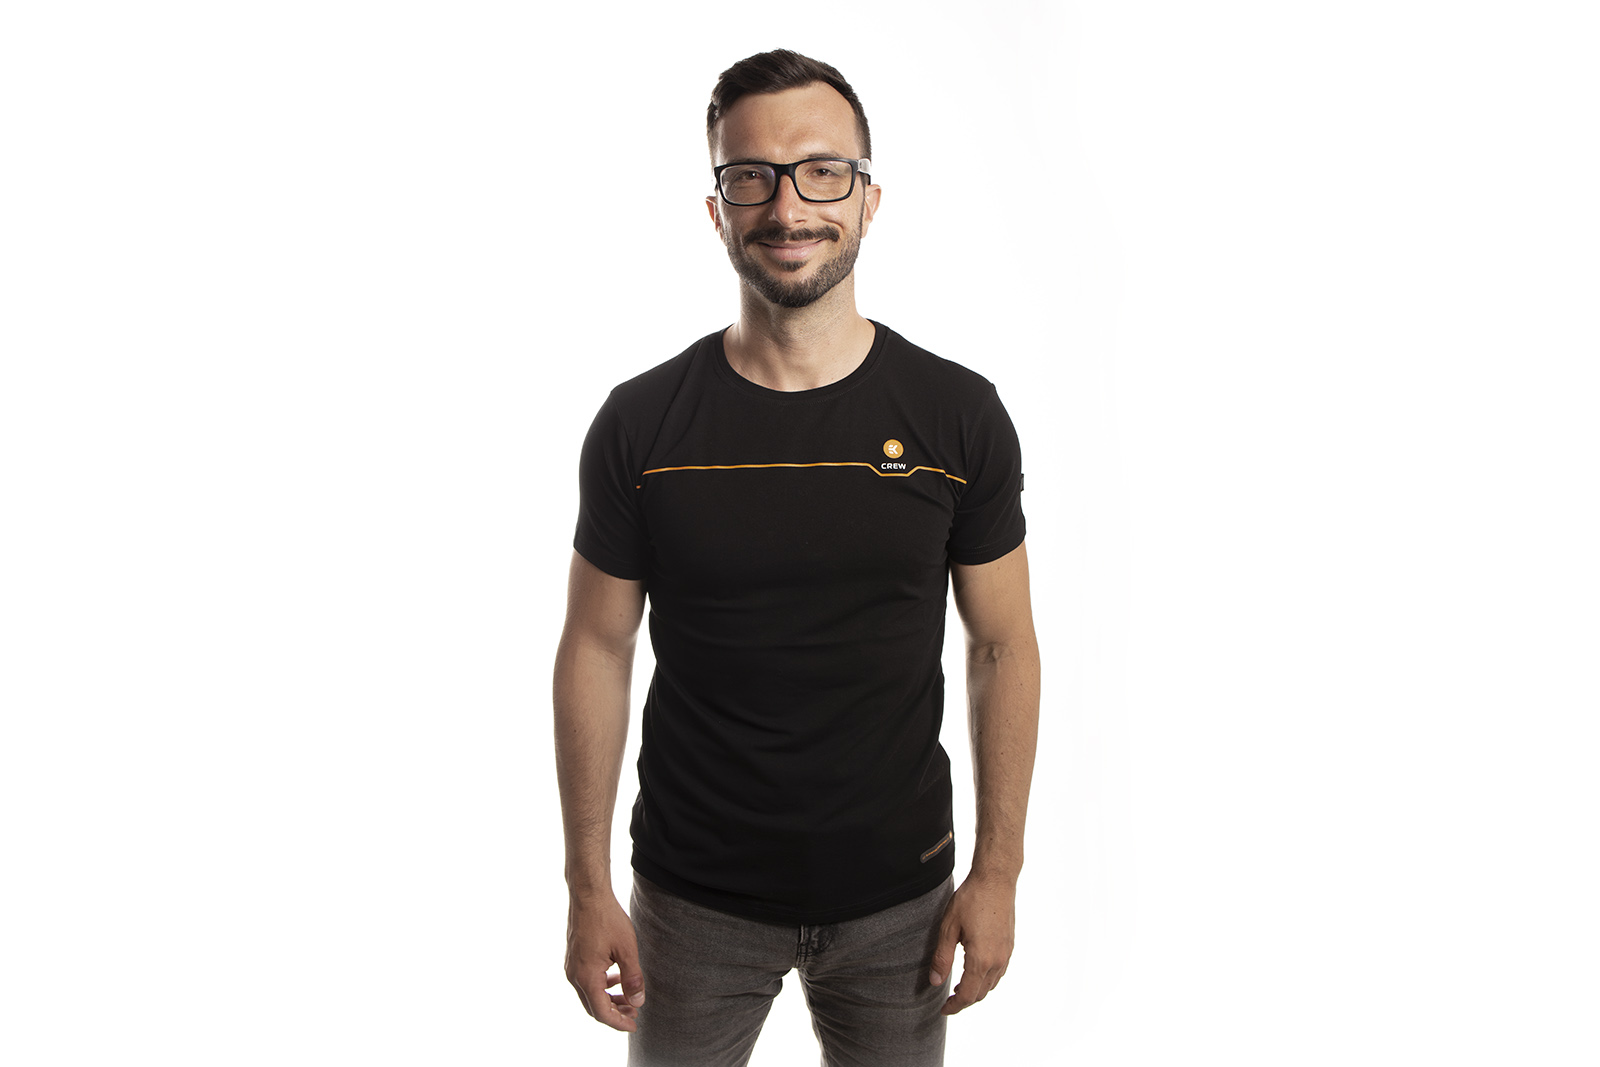 EK-Crew_Men's_Black_T-Shirt_1